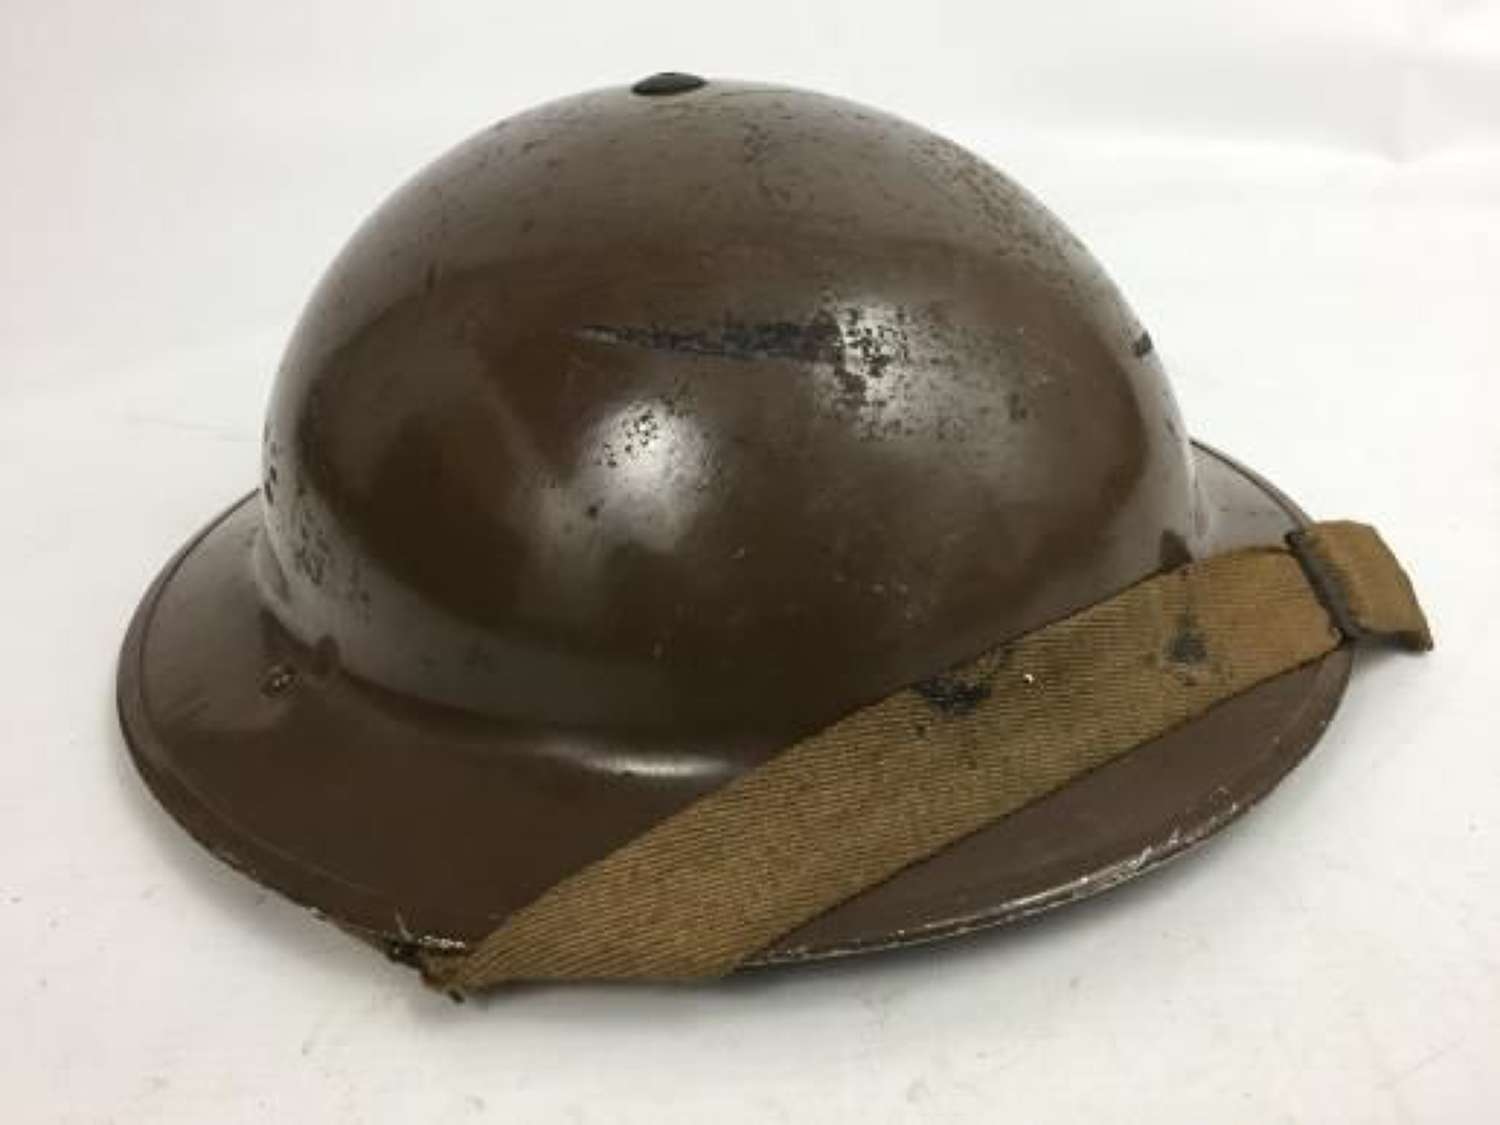 Original 1940 Dated British Army MKII Steel Helmet with 1939 Dated Liner